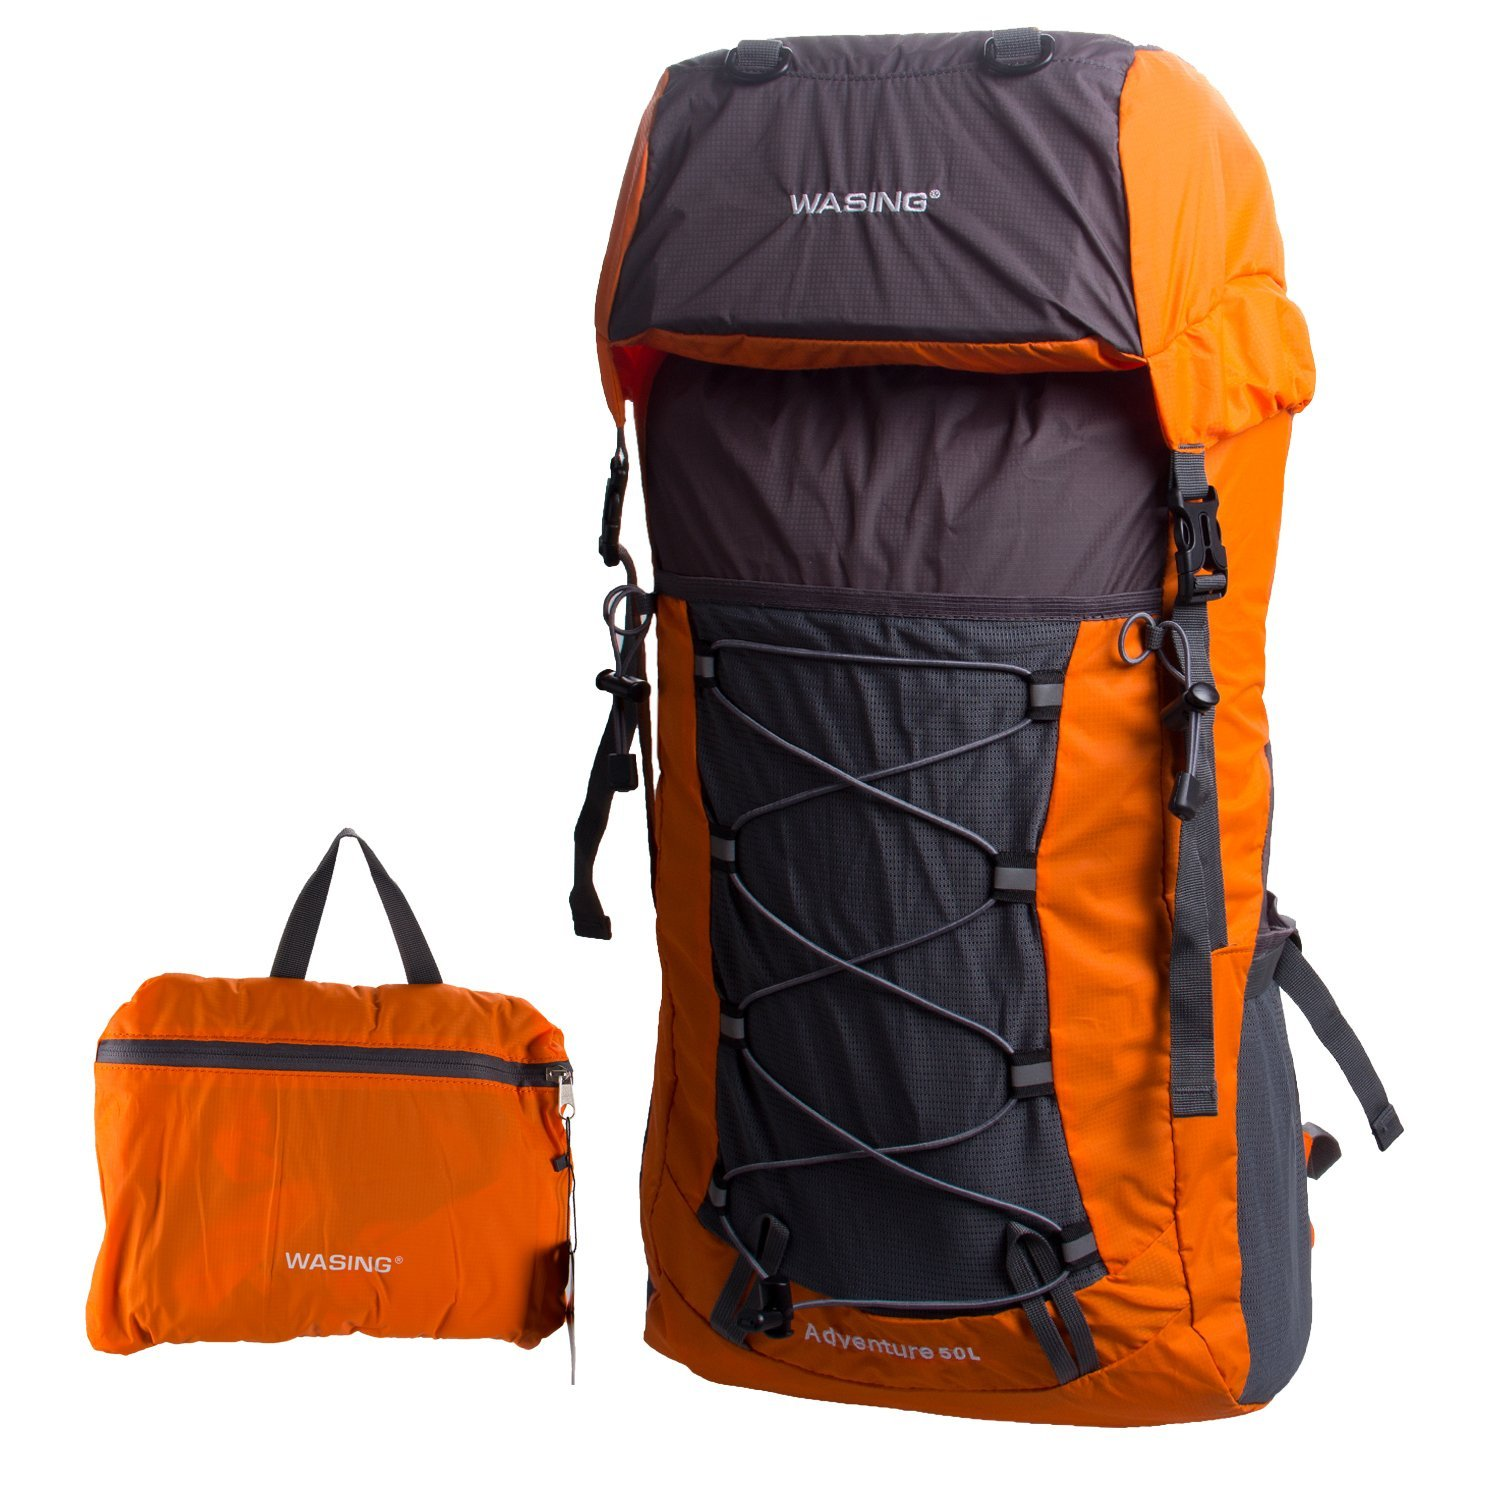 f0245448ac Coreal Large 35l Lightweight Packable Travel Hiking Backpack- Fenix ...